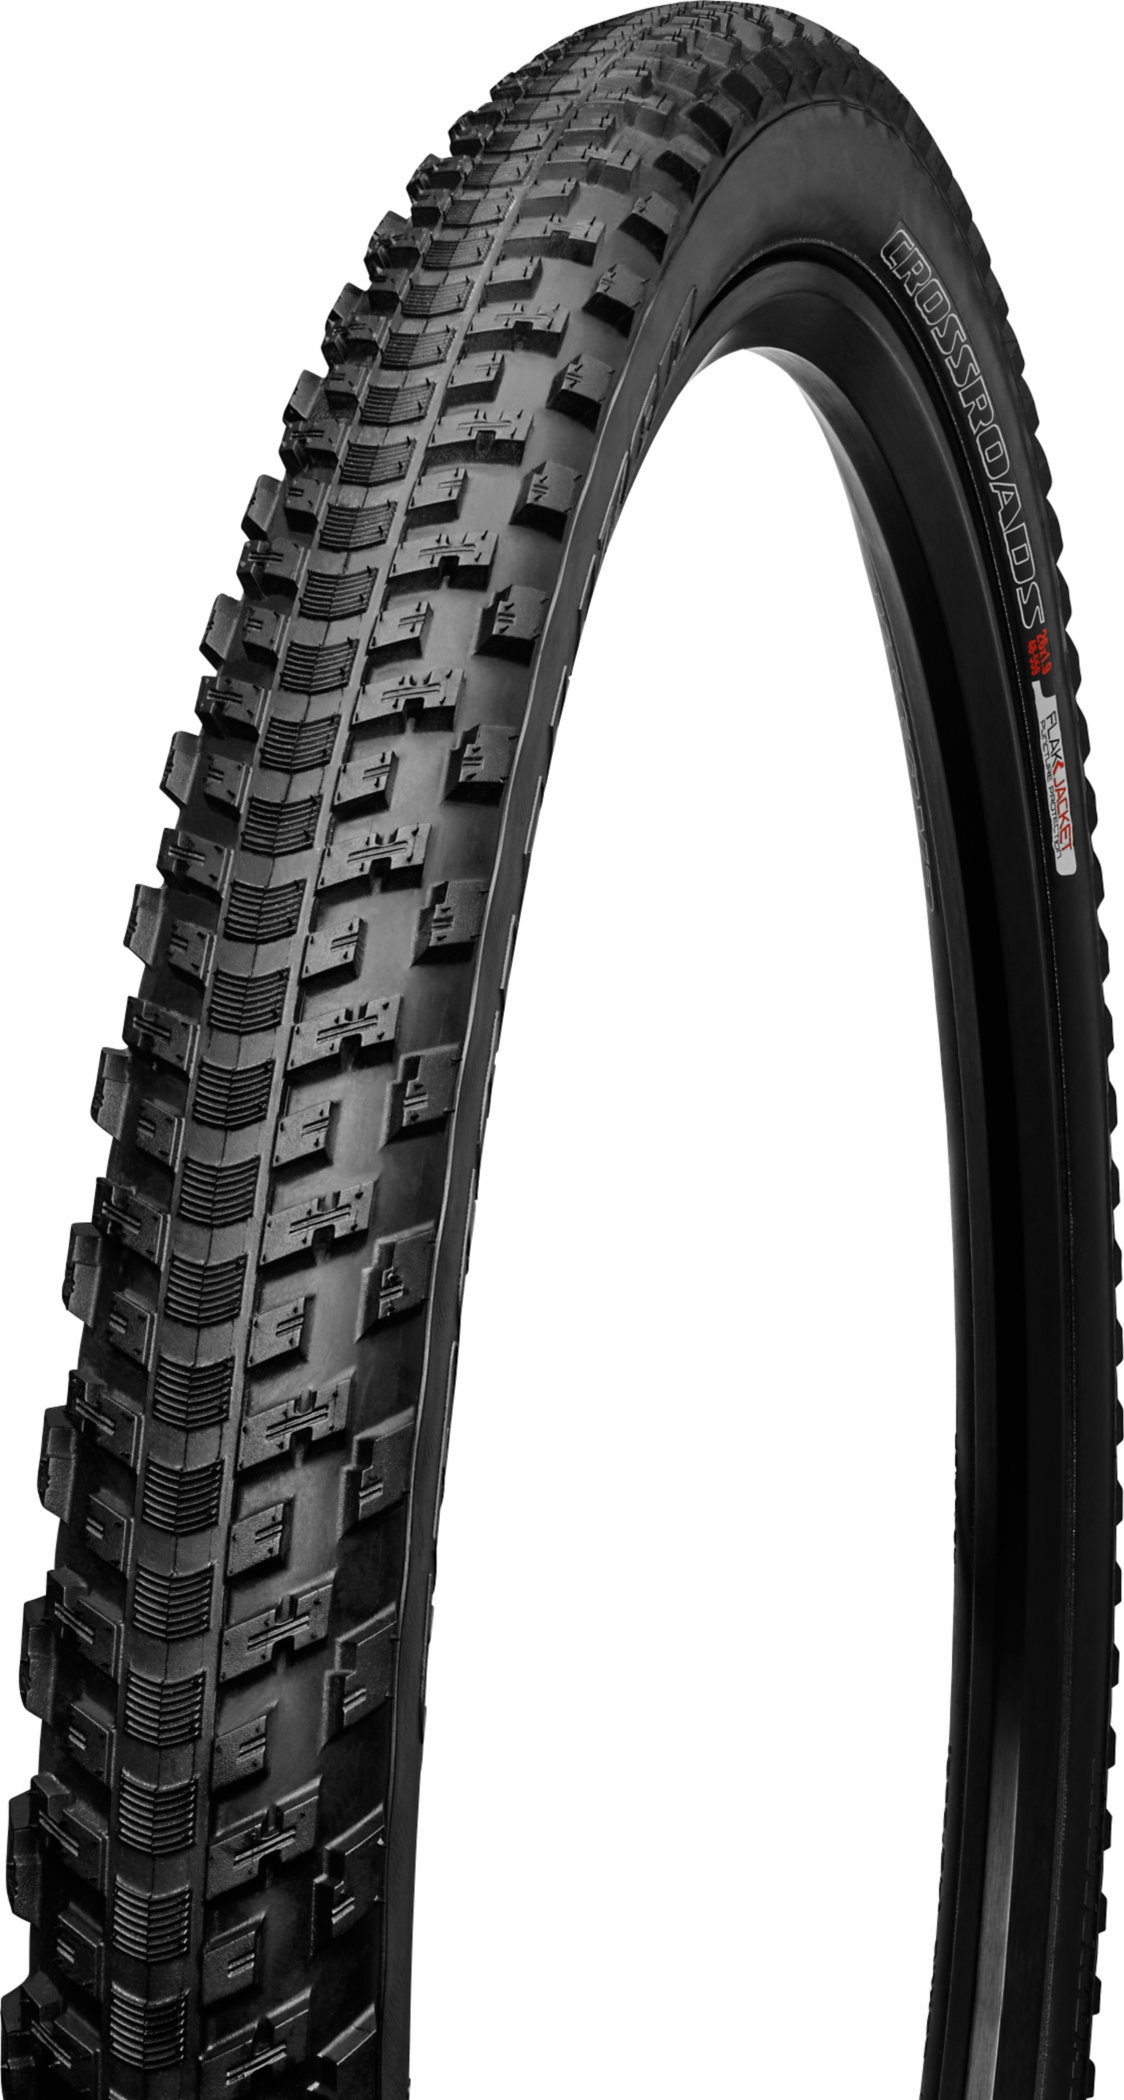 SPECIALIZED CROSSROADS ARM TIRE 26X1.9 - SPECIALIZED CROSSROADS ARM TIRE 26X1.9